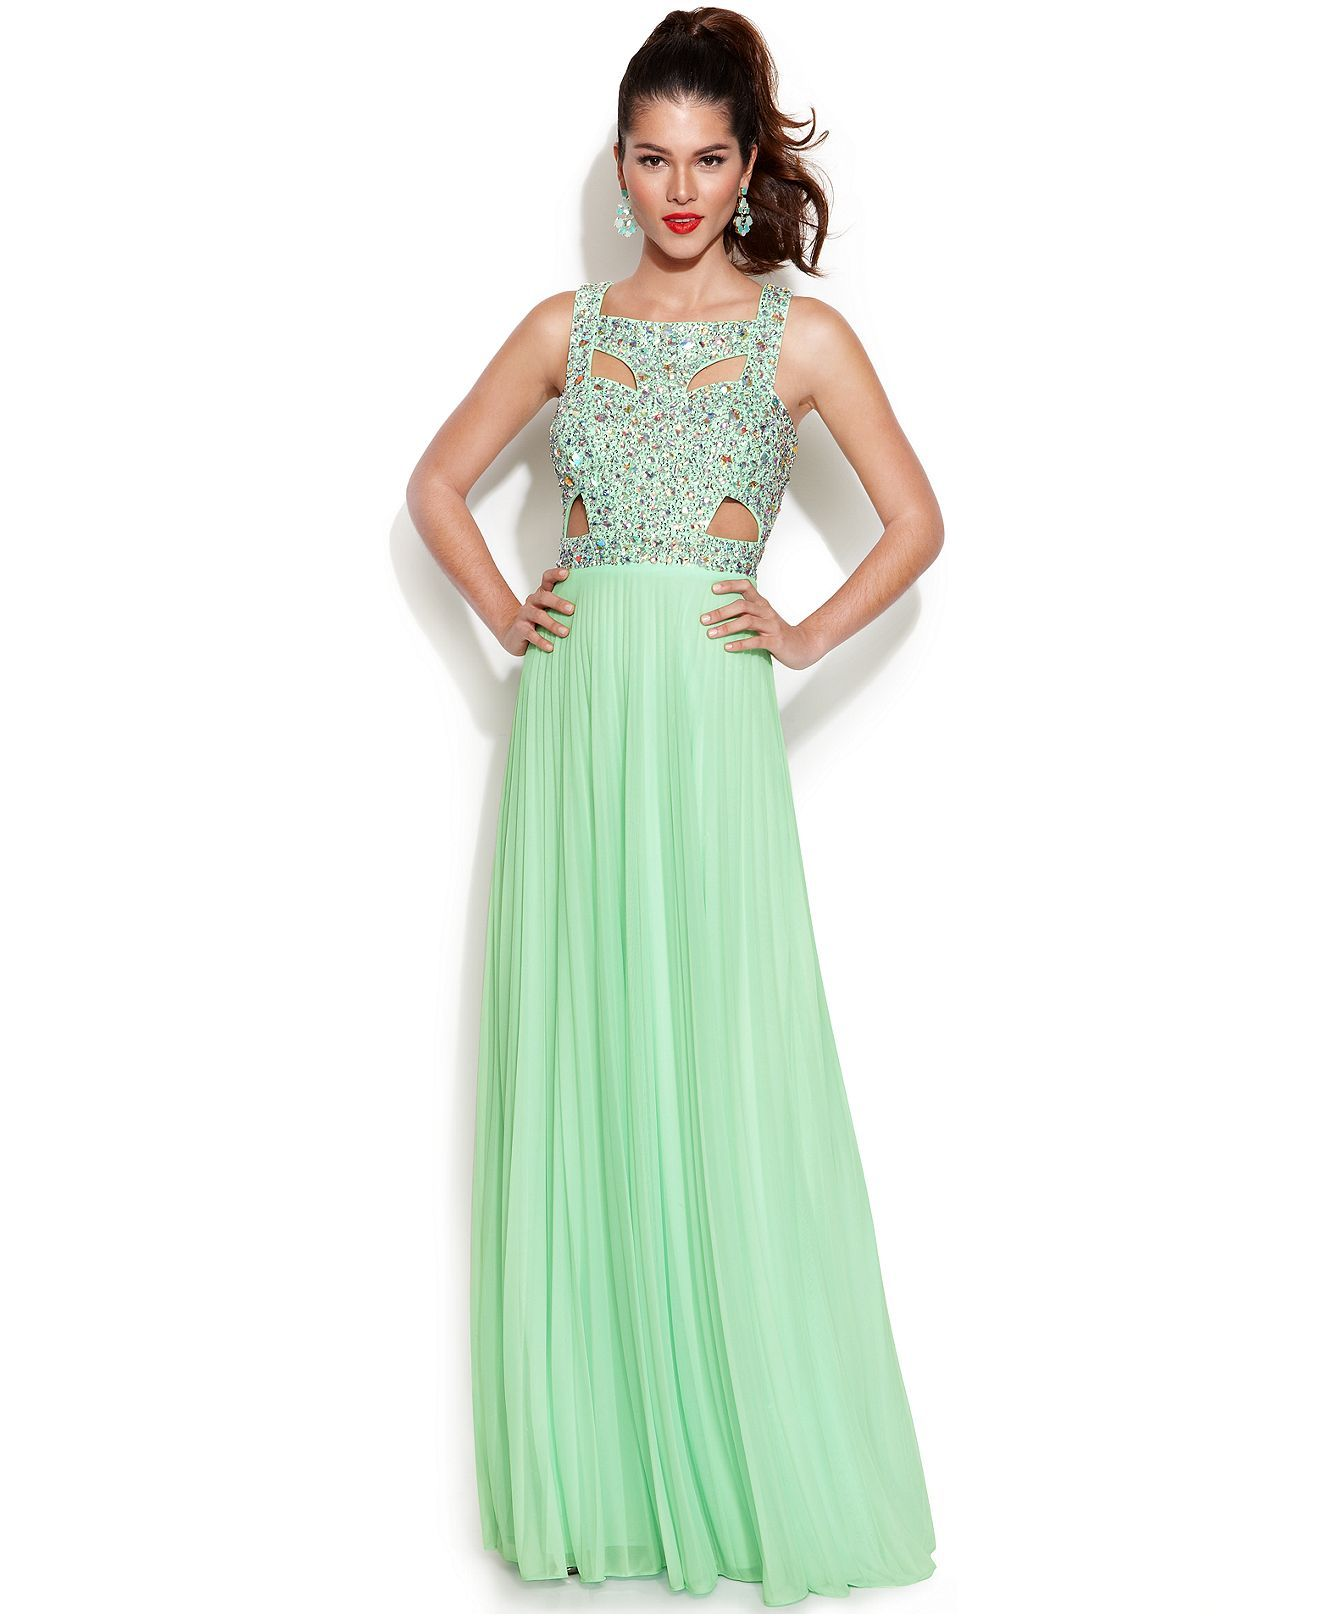 Betsy & Adam Sleeveless Embellished Cutout Gown - Juniors Prom Dresses -  Macy's - Betsy & Adam Sleeveless Embellished Cutout Gown - Juniors Prom